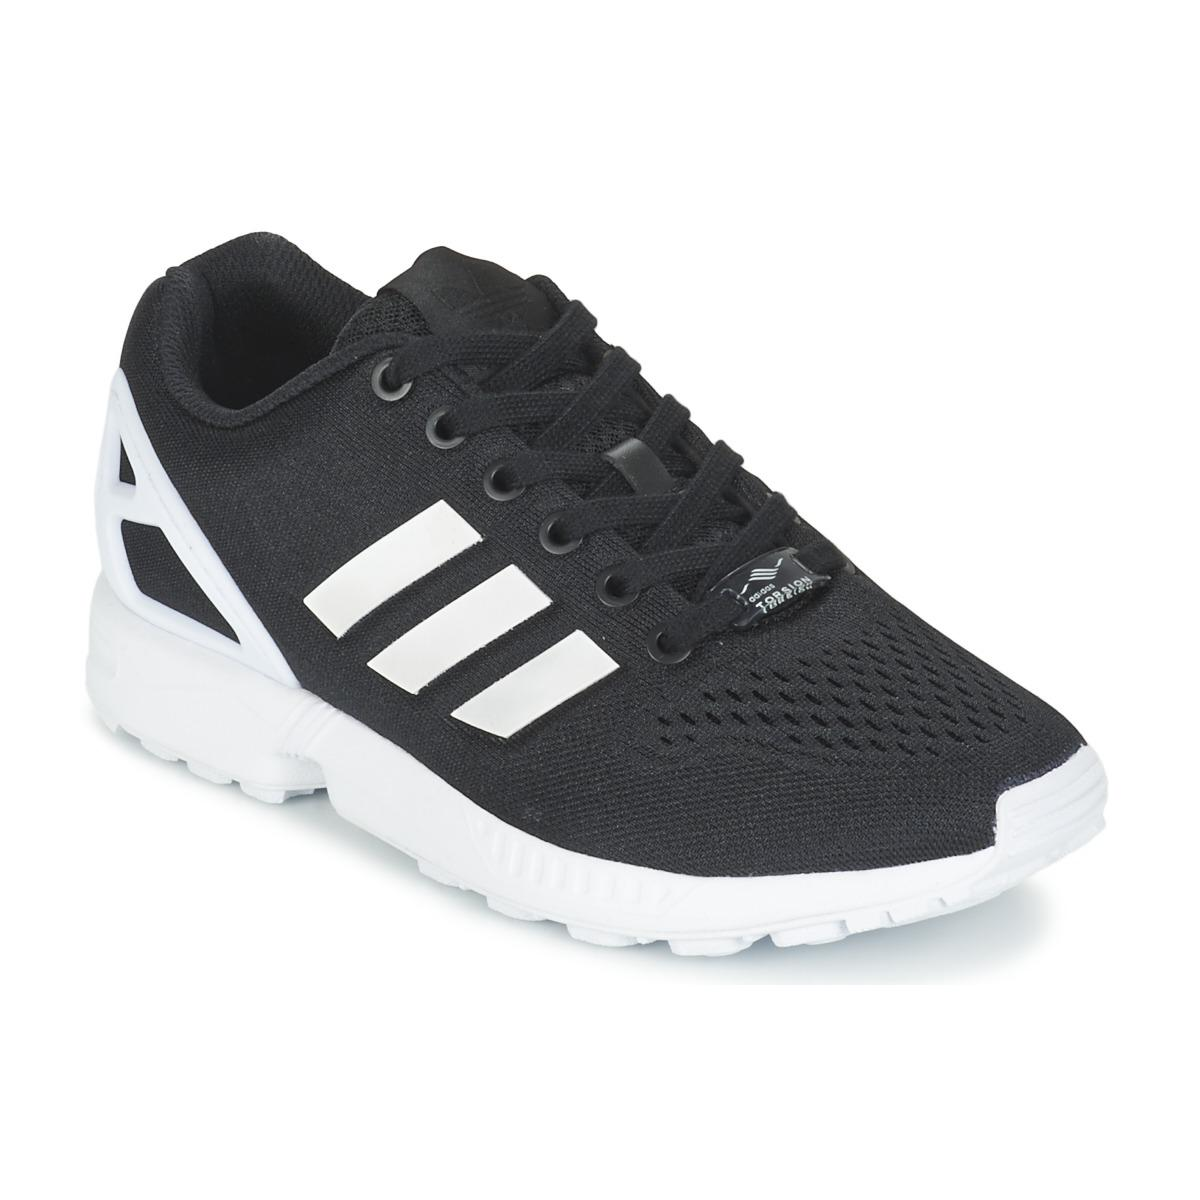 4f404ec048213 Adidas Zx Flux Em Shoes (trainers) in Black - Save 5.376344086021504 ...